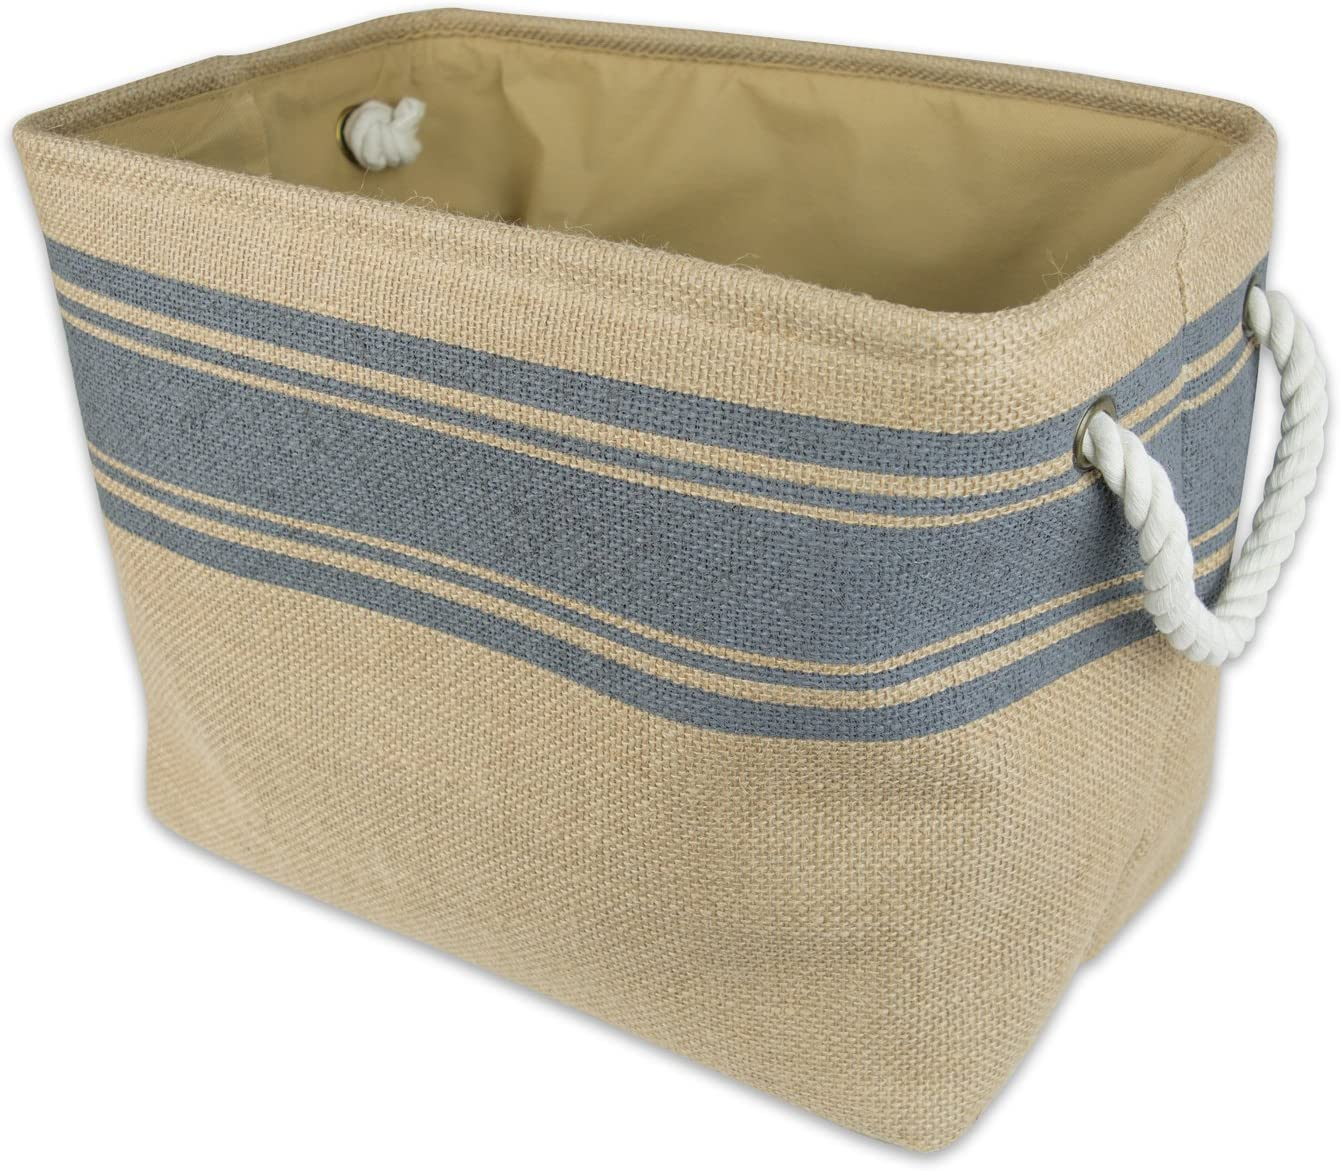 """DII Collapsible Burlap Storage Basket or Bin with Durable Cotton Handles, Home Organizational Solution for Office, Bedroom, Closet, Toys, & Laundry (Medium - 16x10x12""""), Grey Border"""